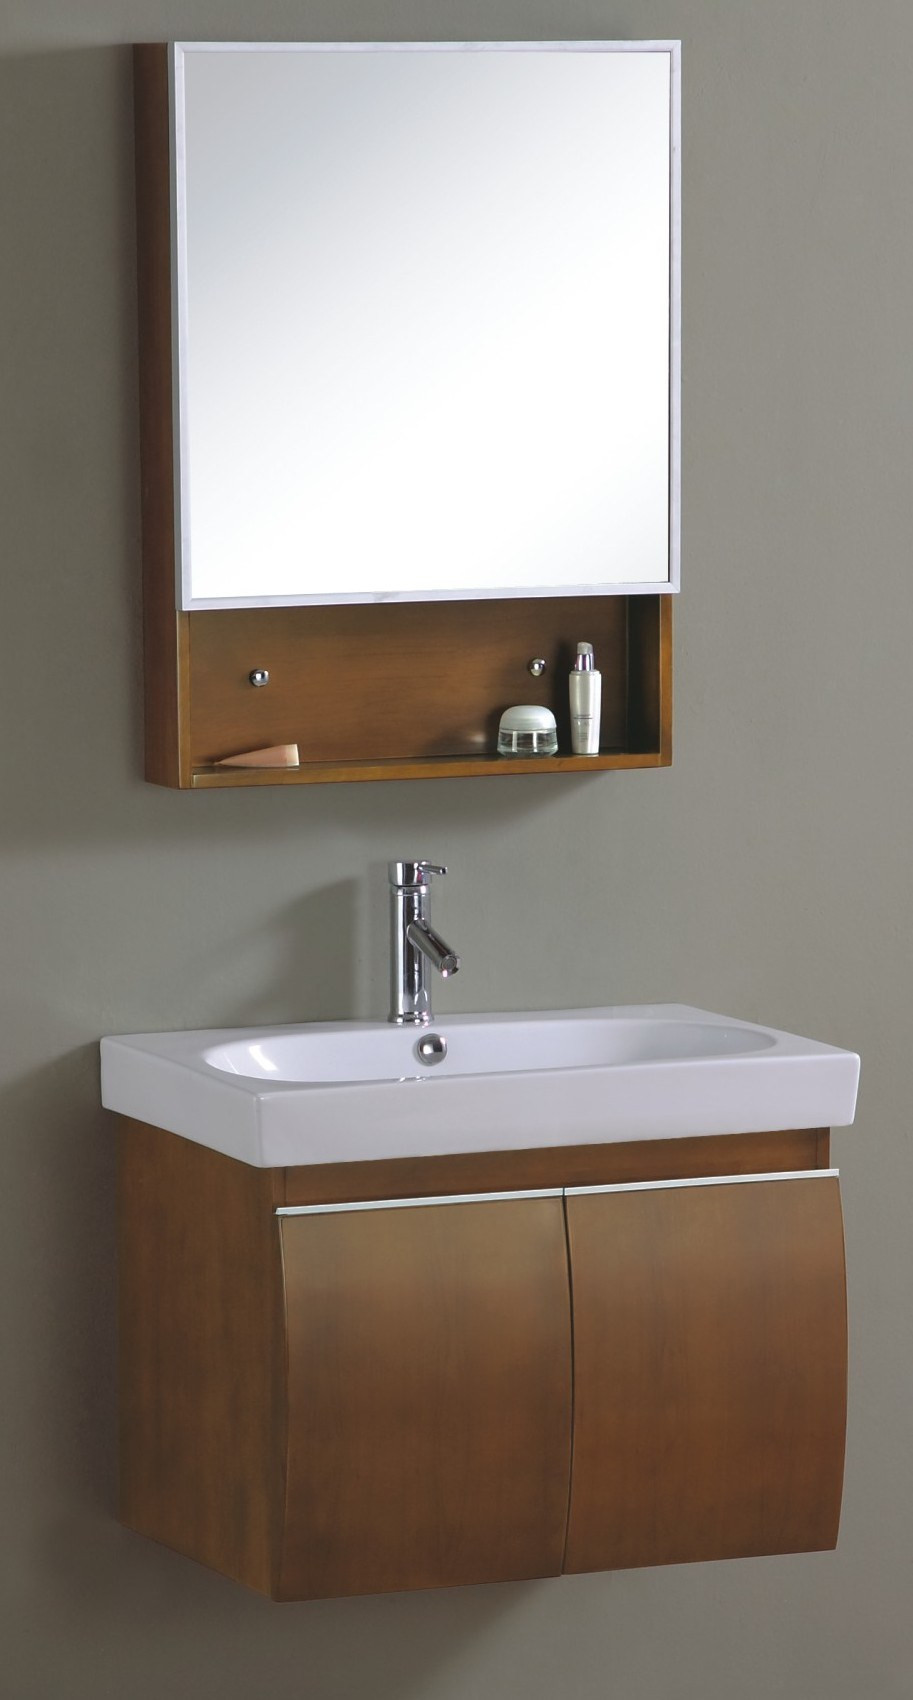 Best ideas about Wall Mounted Bathroom Cabinets . Save or Pin wall mounted bathroom cabinets 28 images bathroom Now.